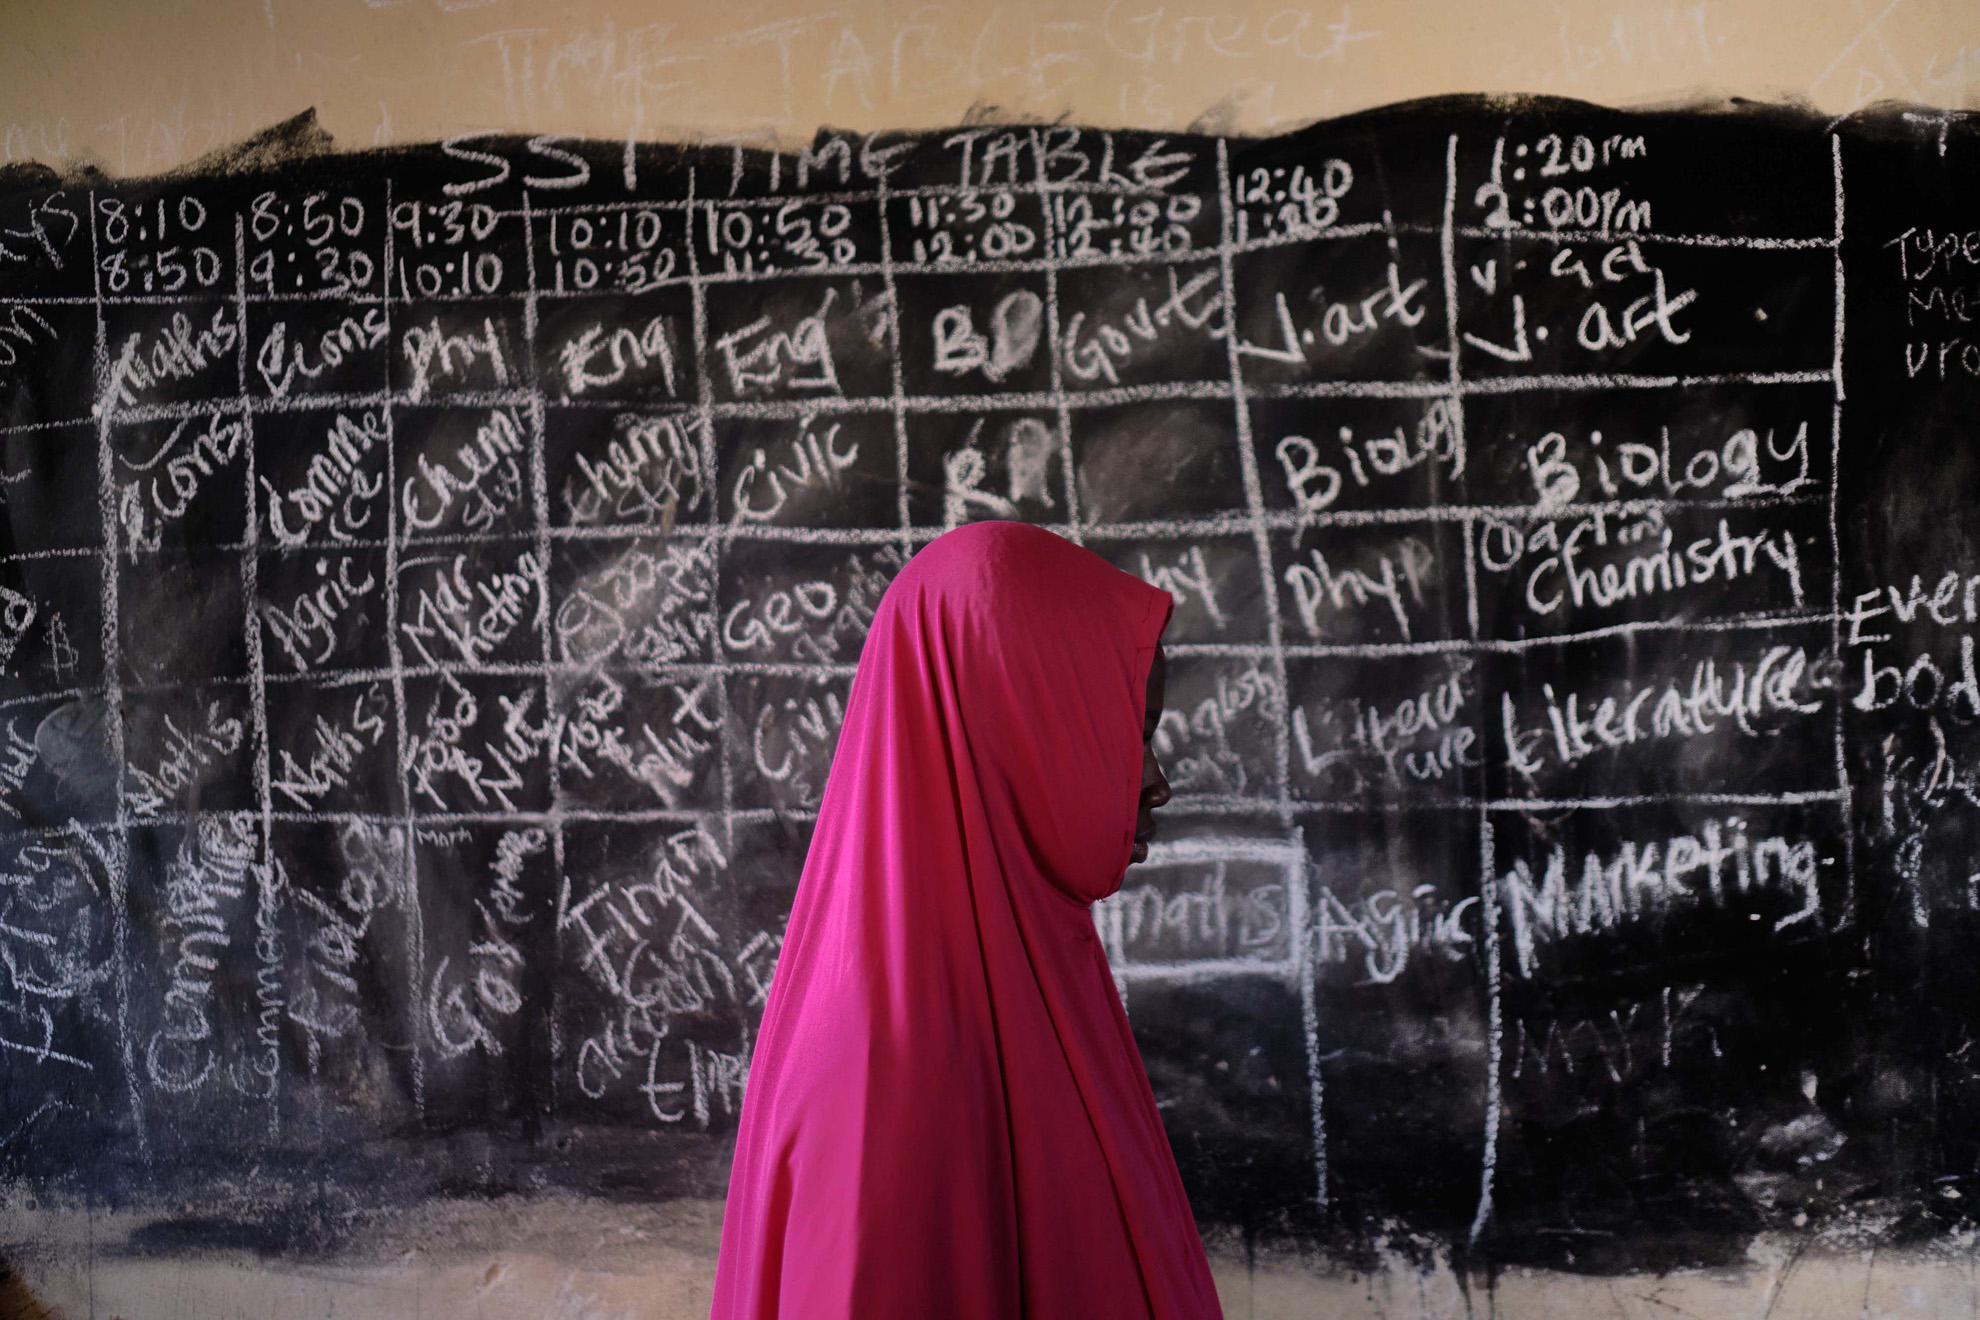 Balarabe (fictitious name) 17, she was raised in North East Nigeria, brainwashed by Boko Haram to hate western education. She enrolled in a school after she regained freedom. She plans to become a nurse like her sister.